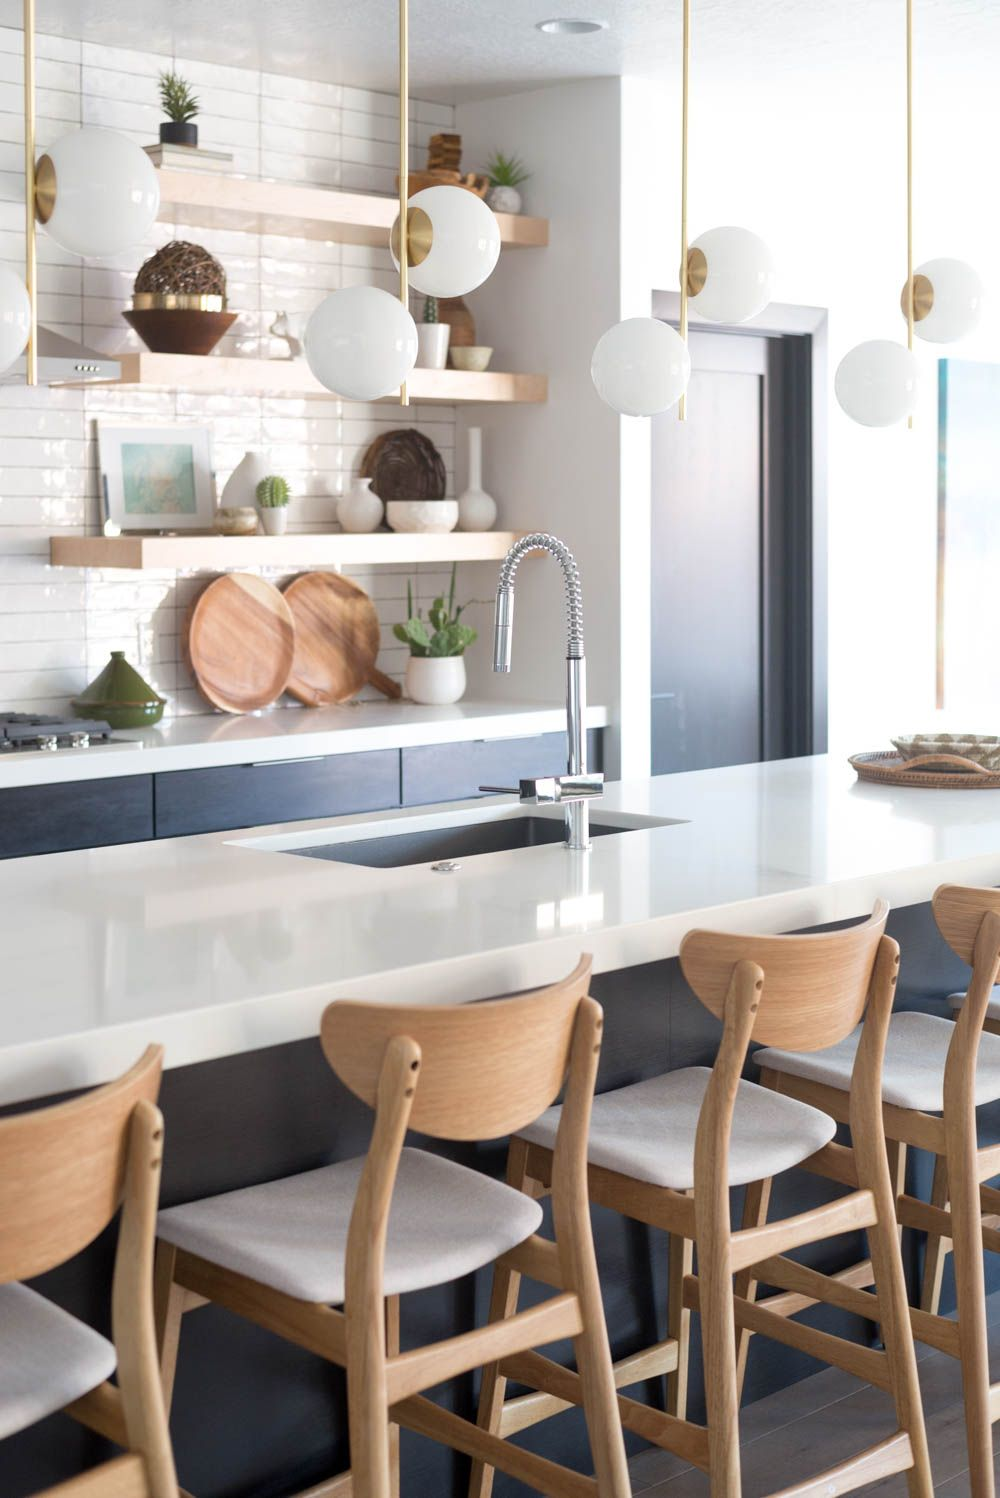 In Law s Kitchen Reveal The Unexpected Sink that Makes The Space